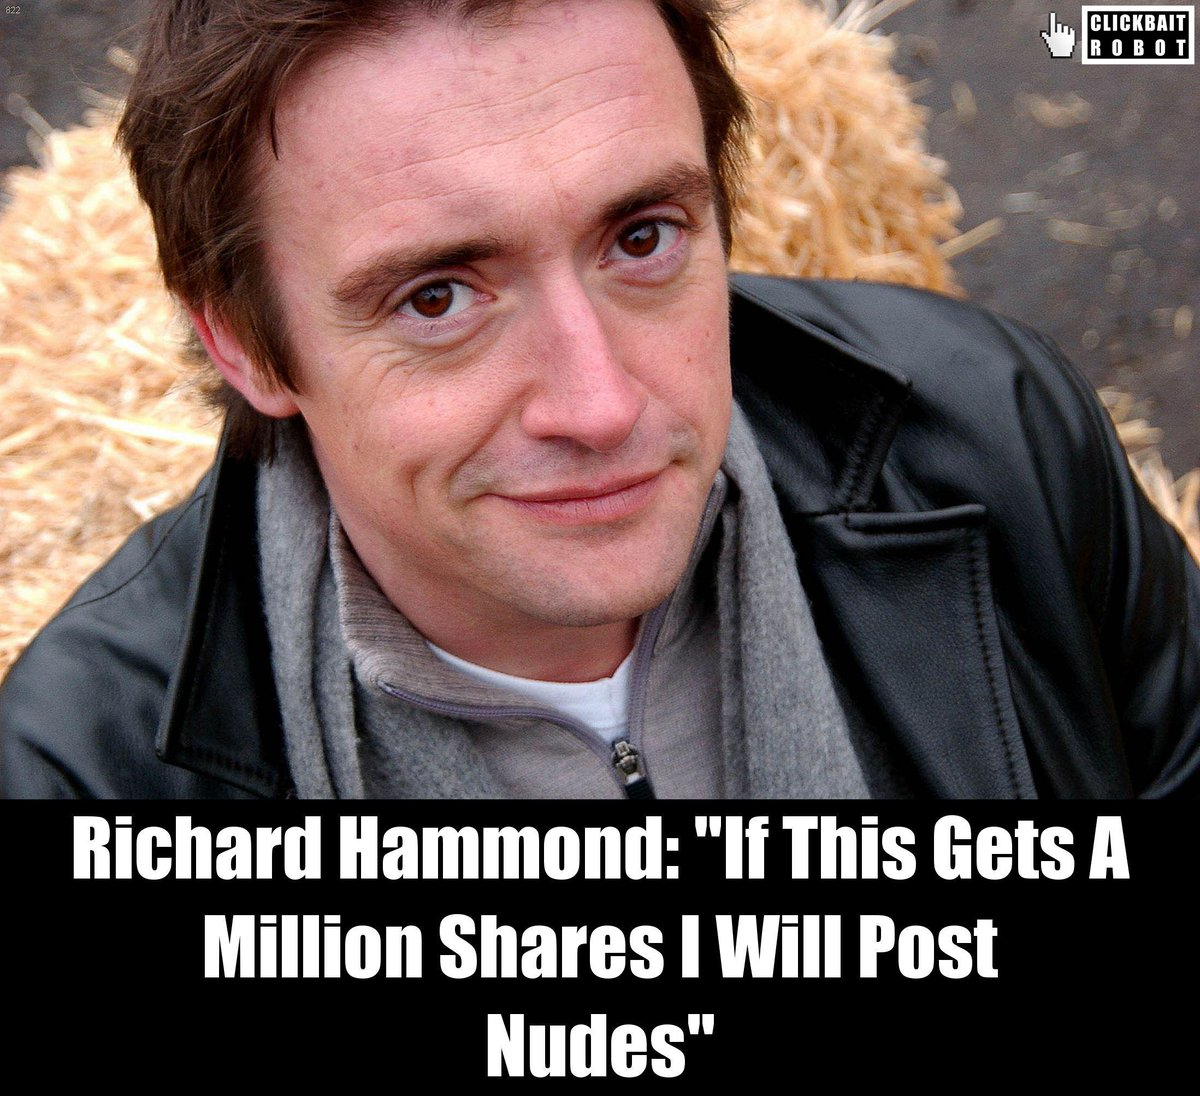 Richard Hammond: 'If This Gets A Million Shares I Will Post Nudes' #RichardHammond